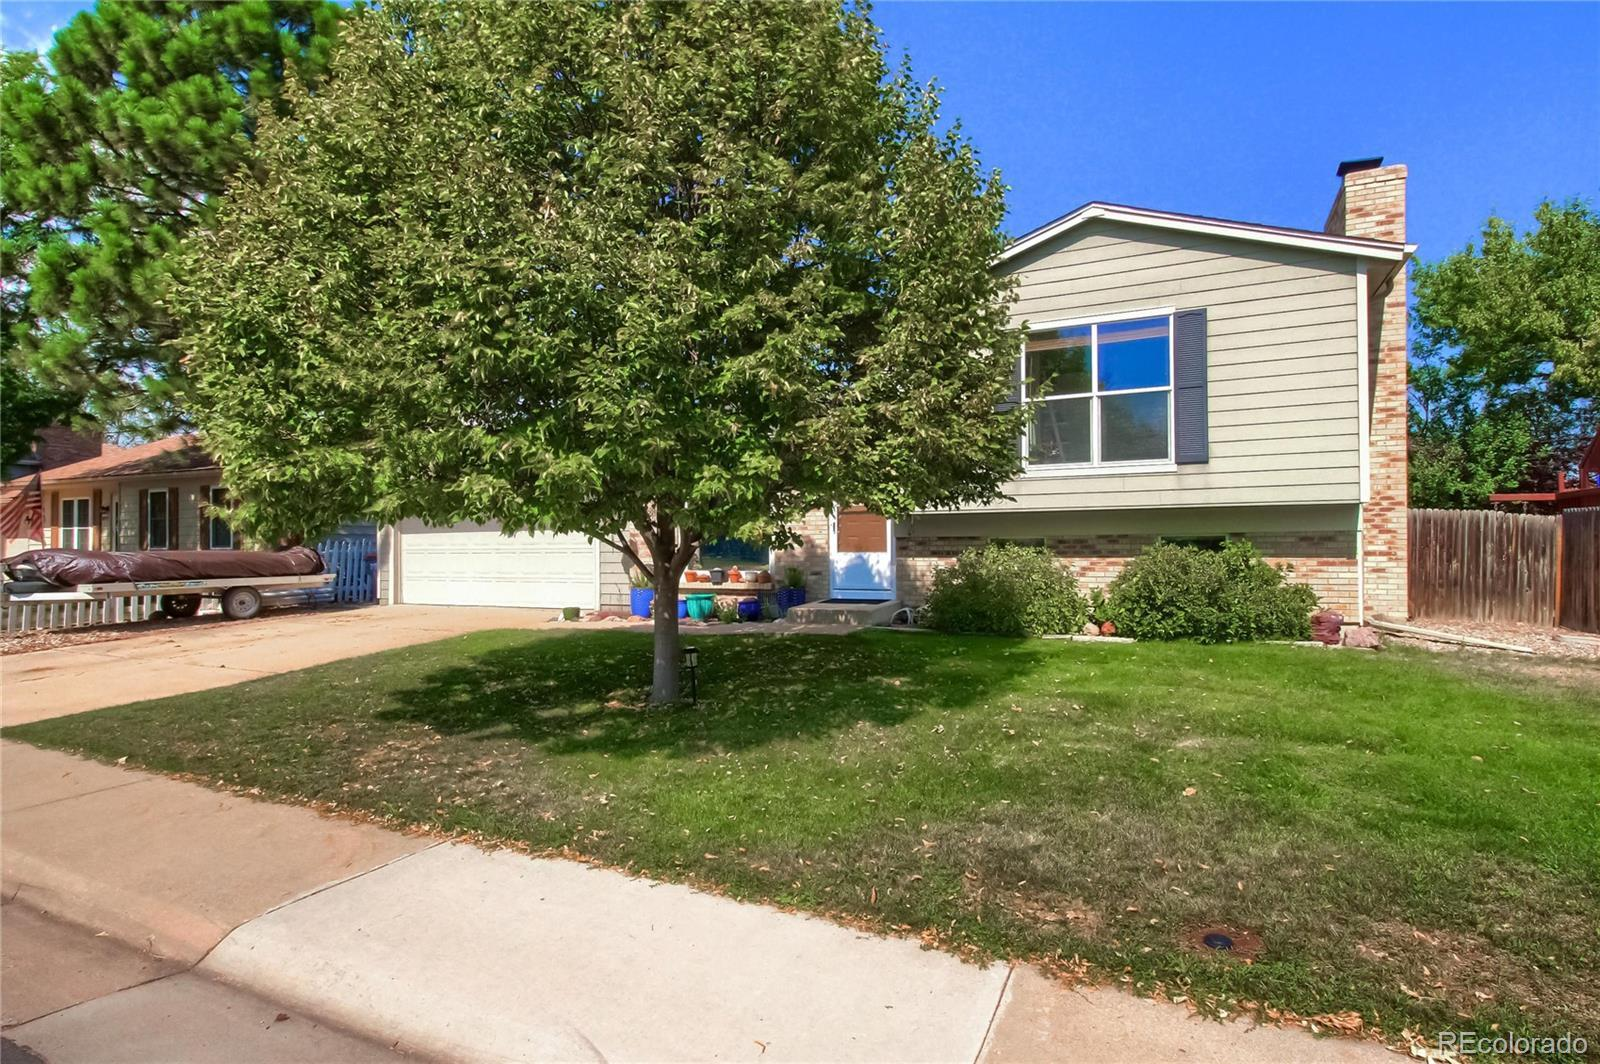 8965 W 96th Drive, Westminster, CO 80021 - #: 3004373